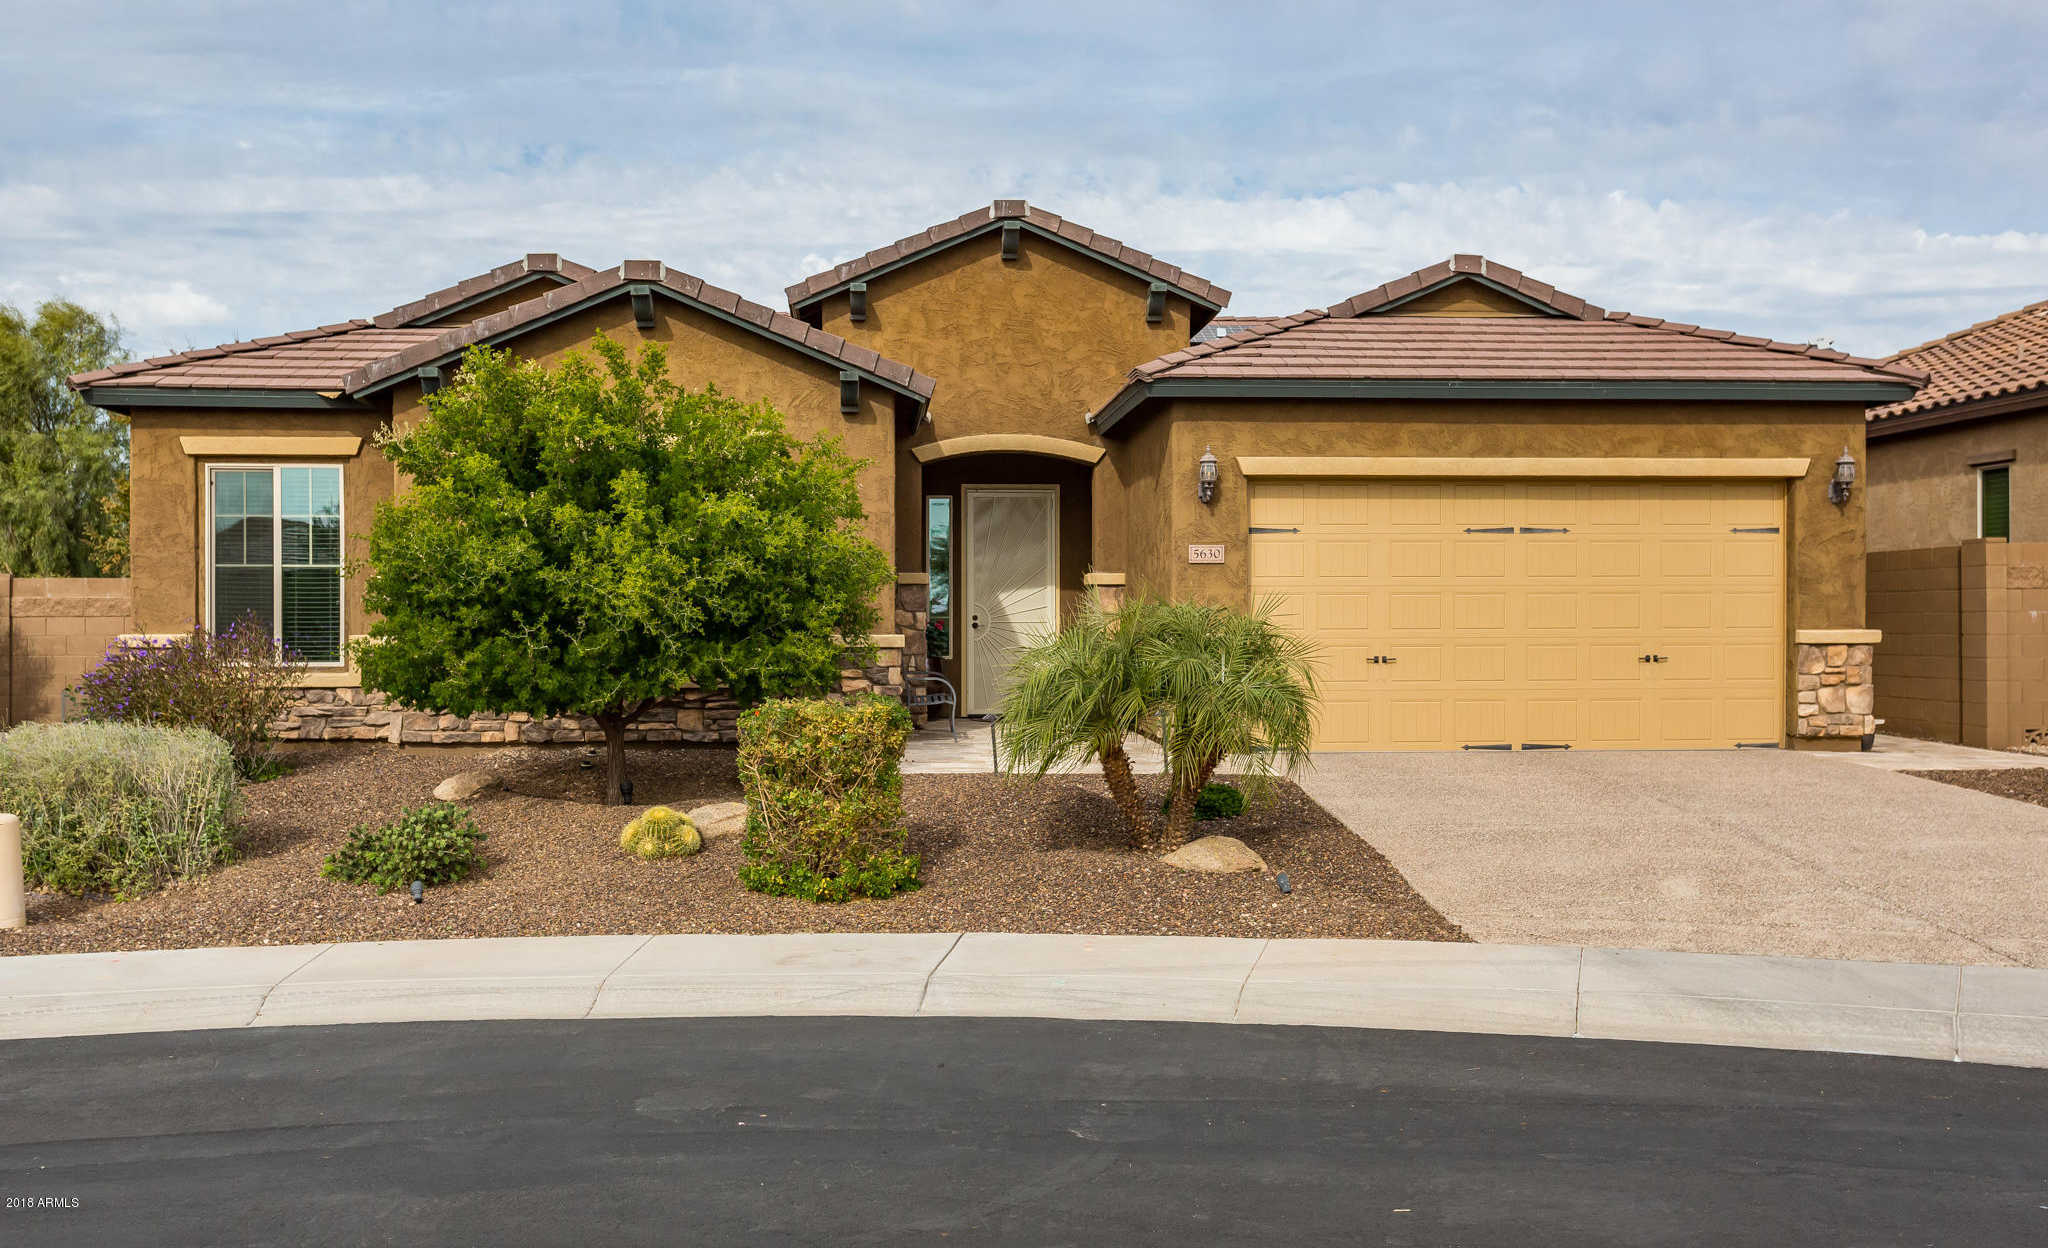 $585,000 - 4Br/3Ba - Home for Sale in Lone Mountain, Cave Creek